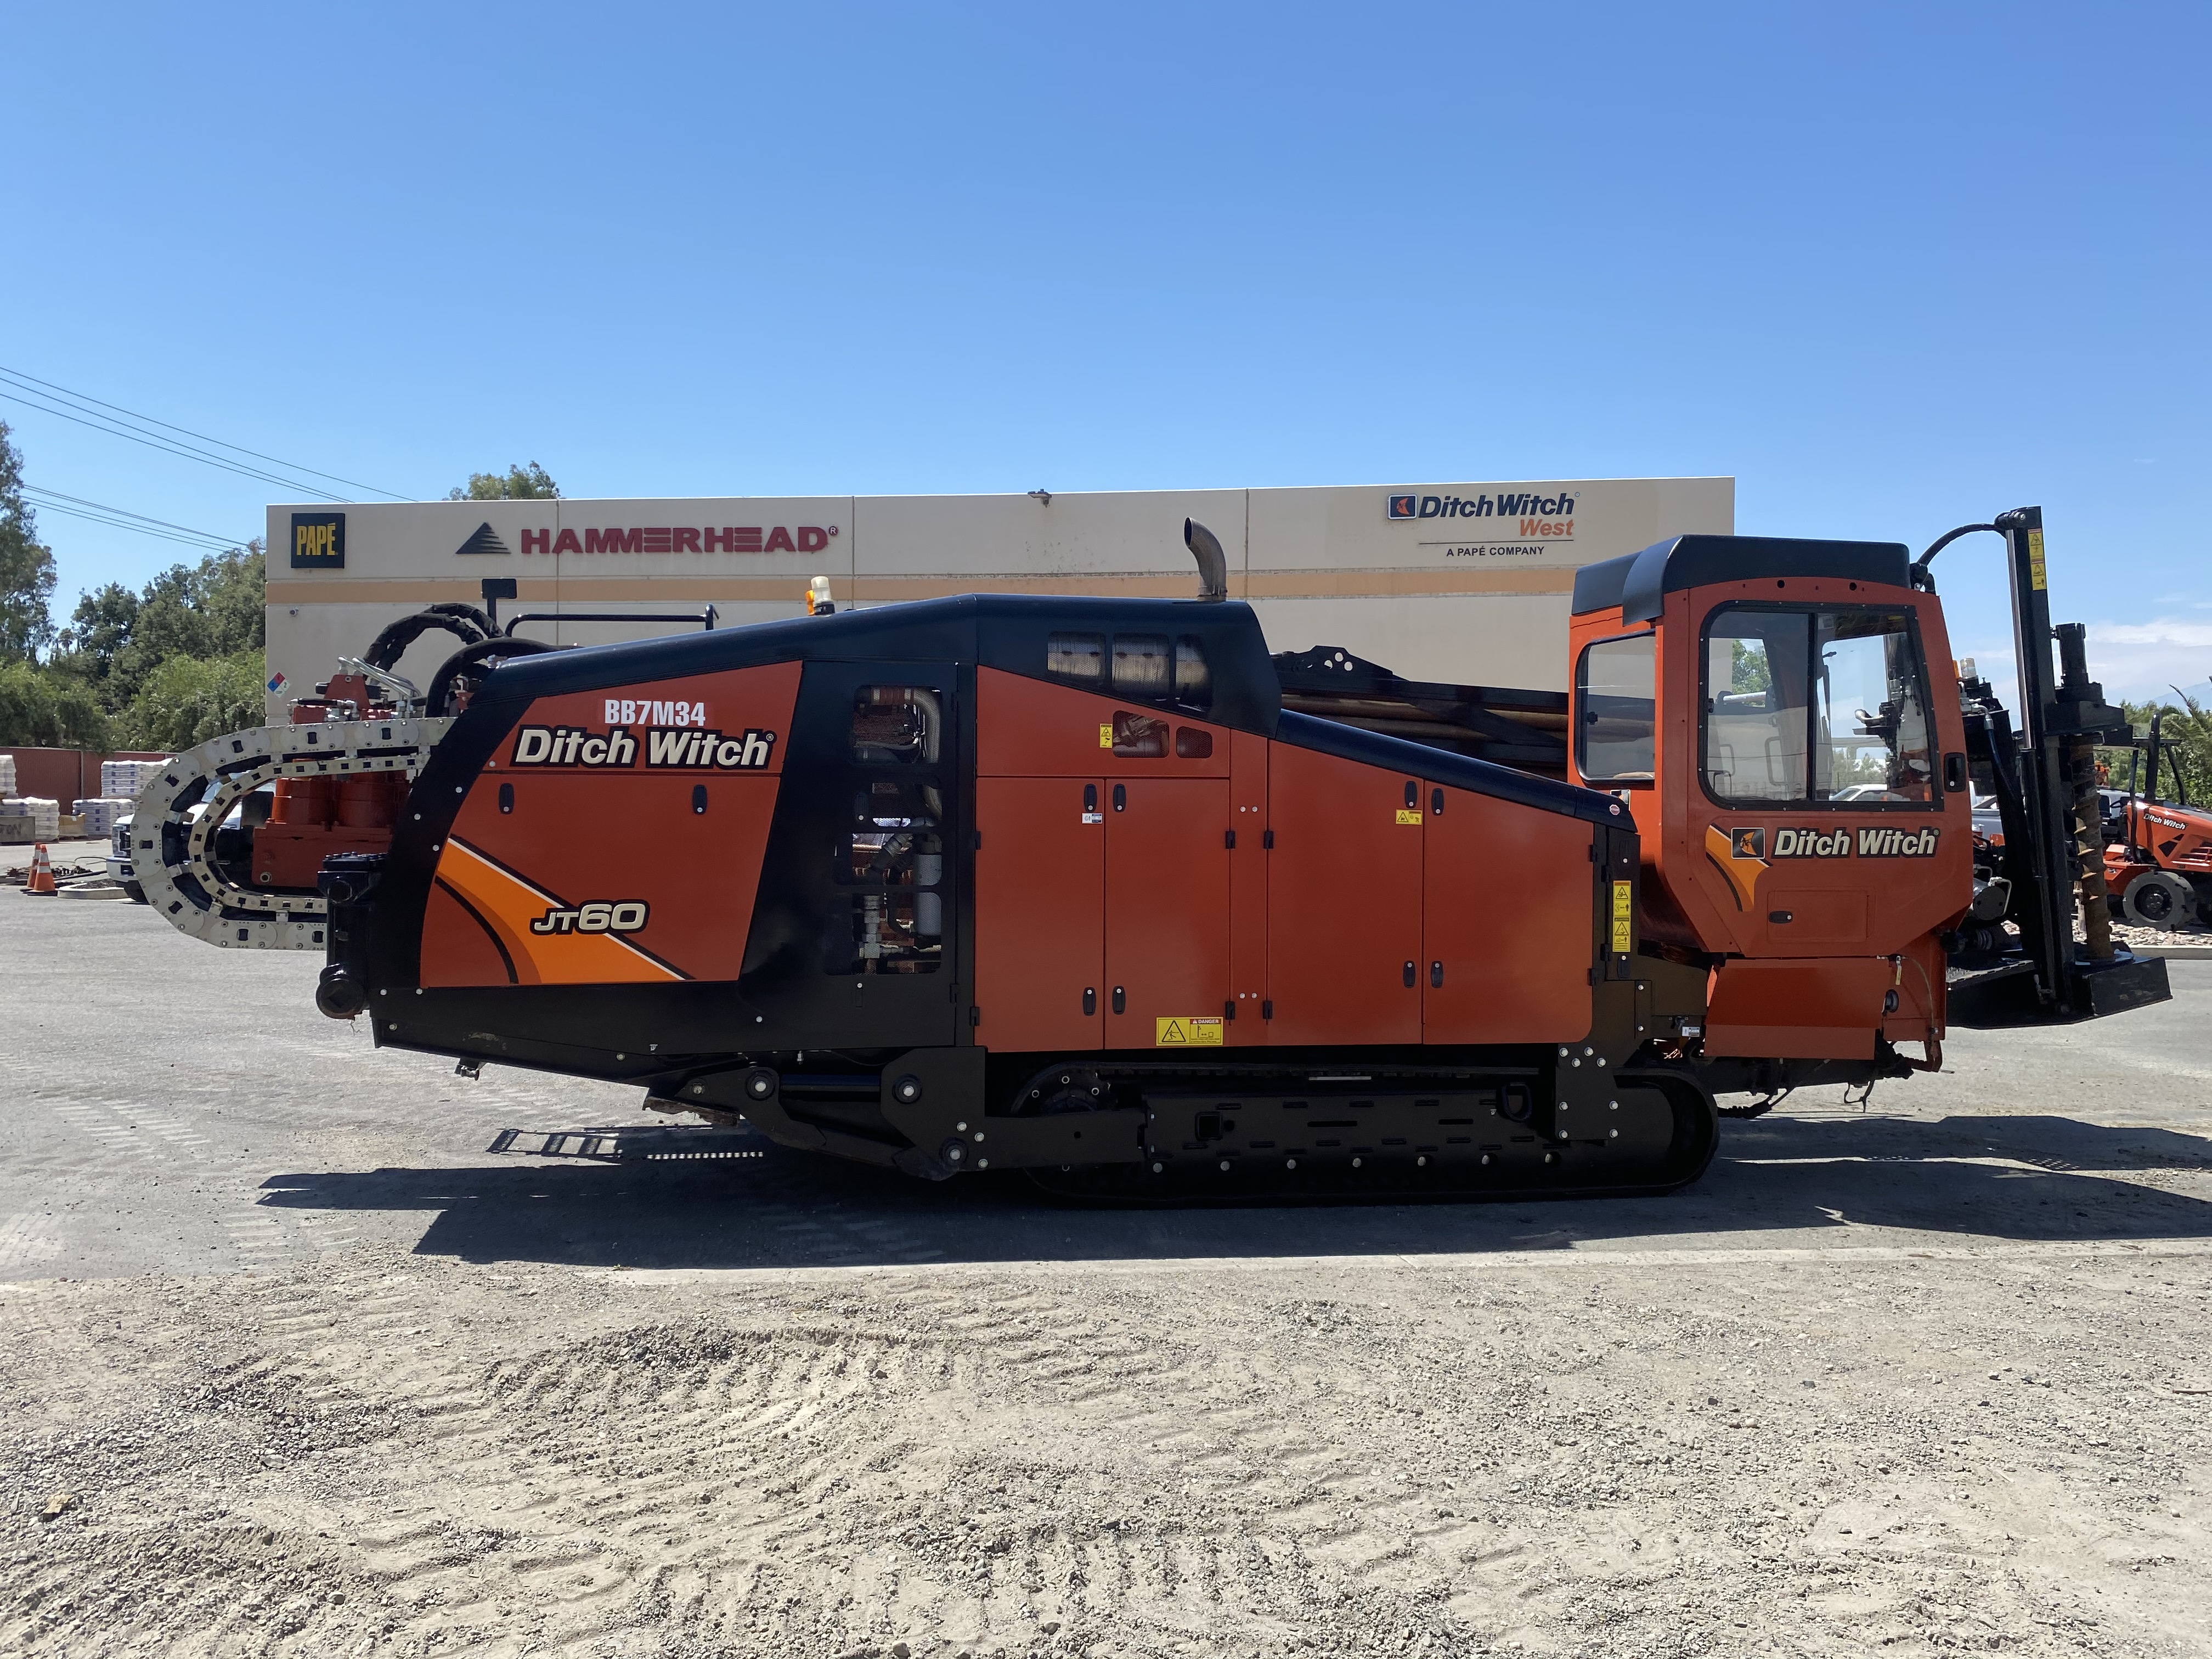 Ditch Witch JT60